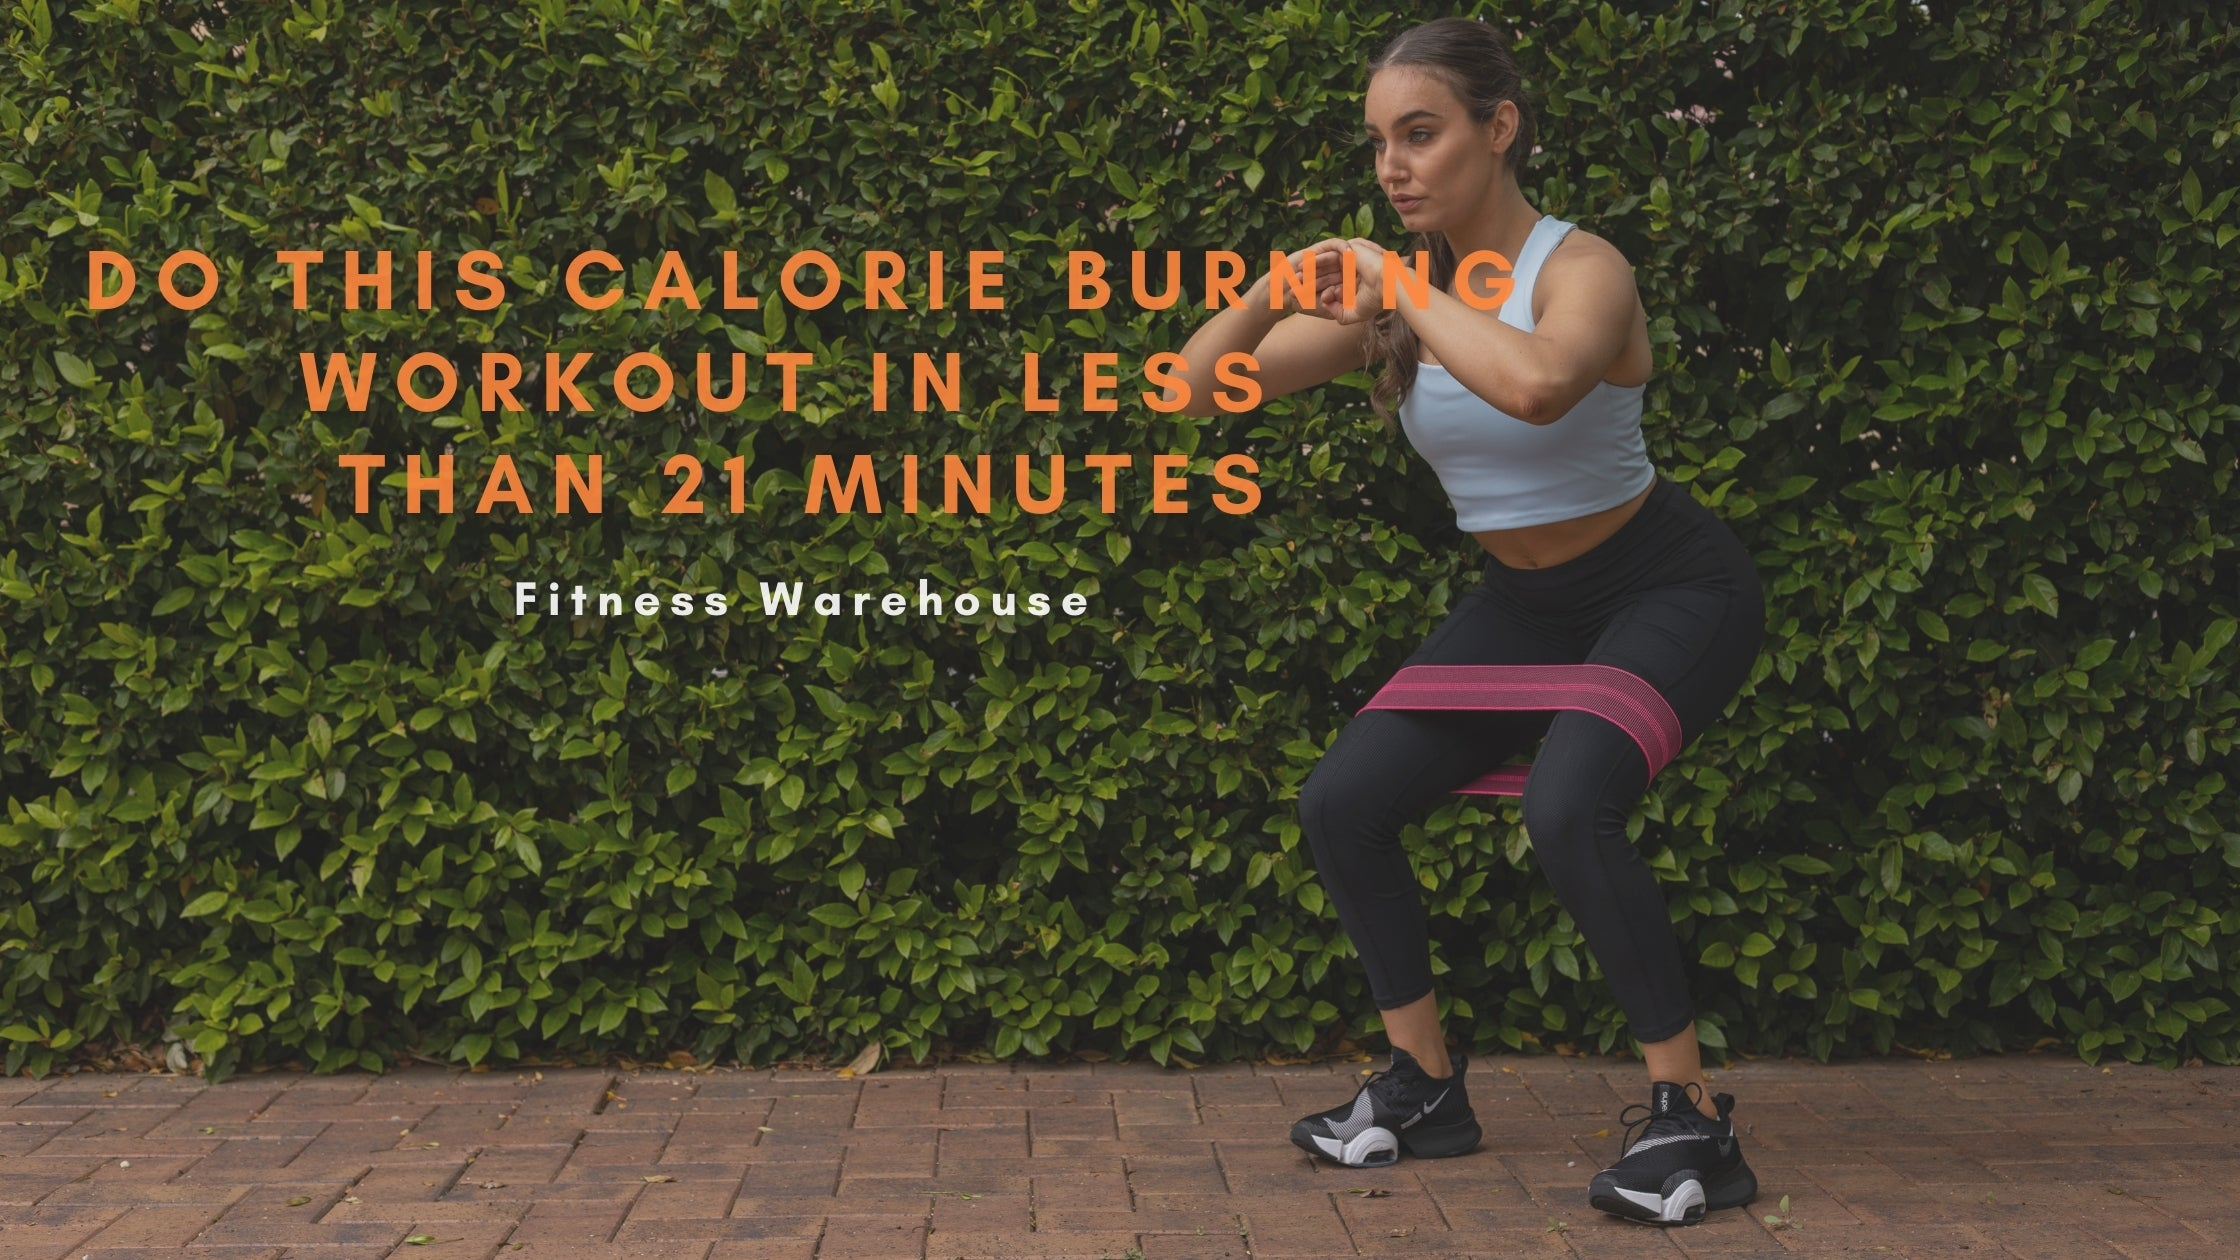 Do This Calorie Burning Workout In Less Than 21 Minutes